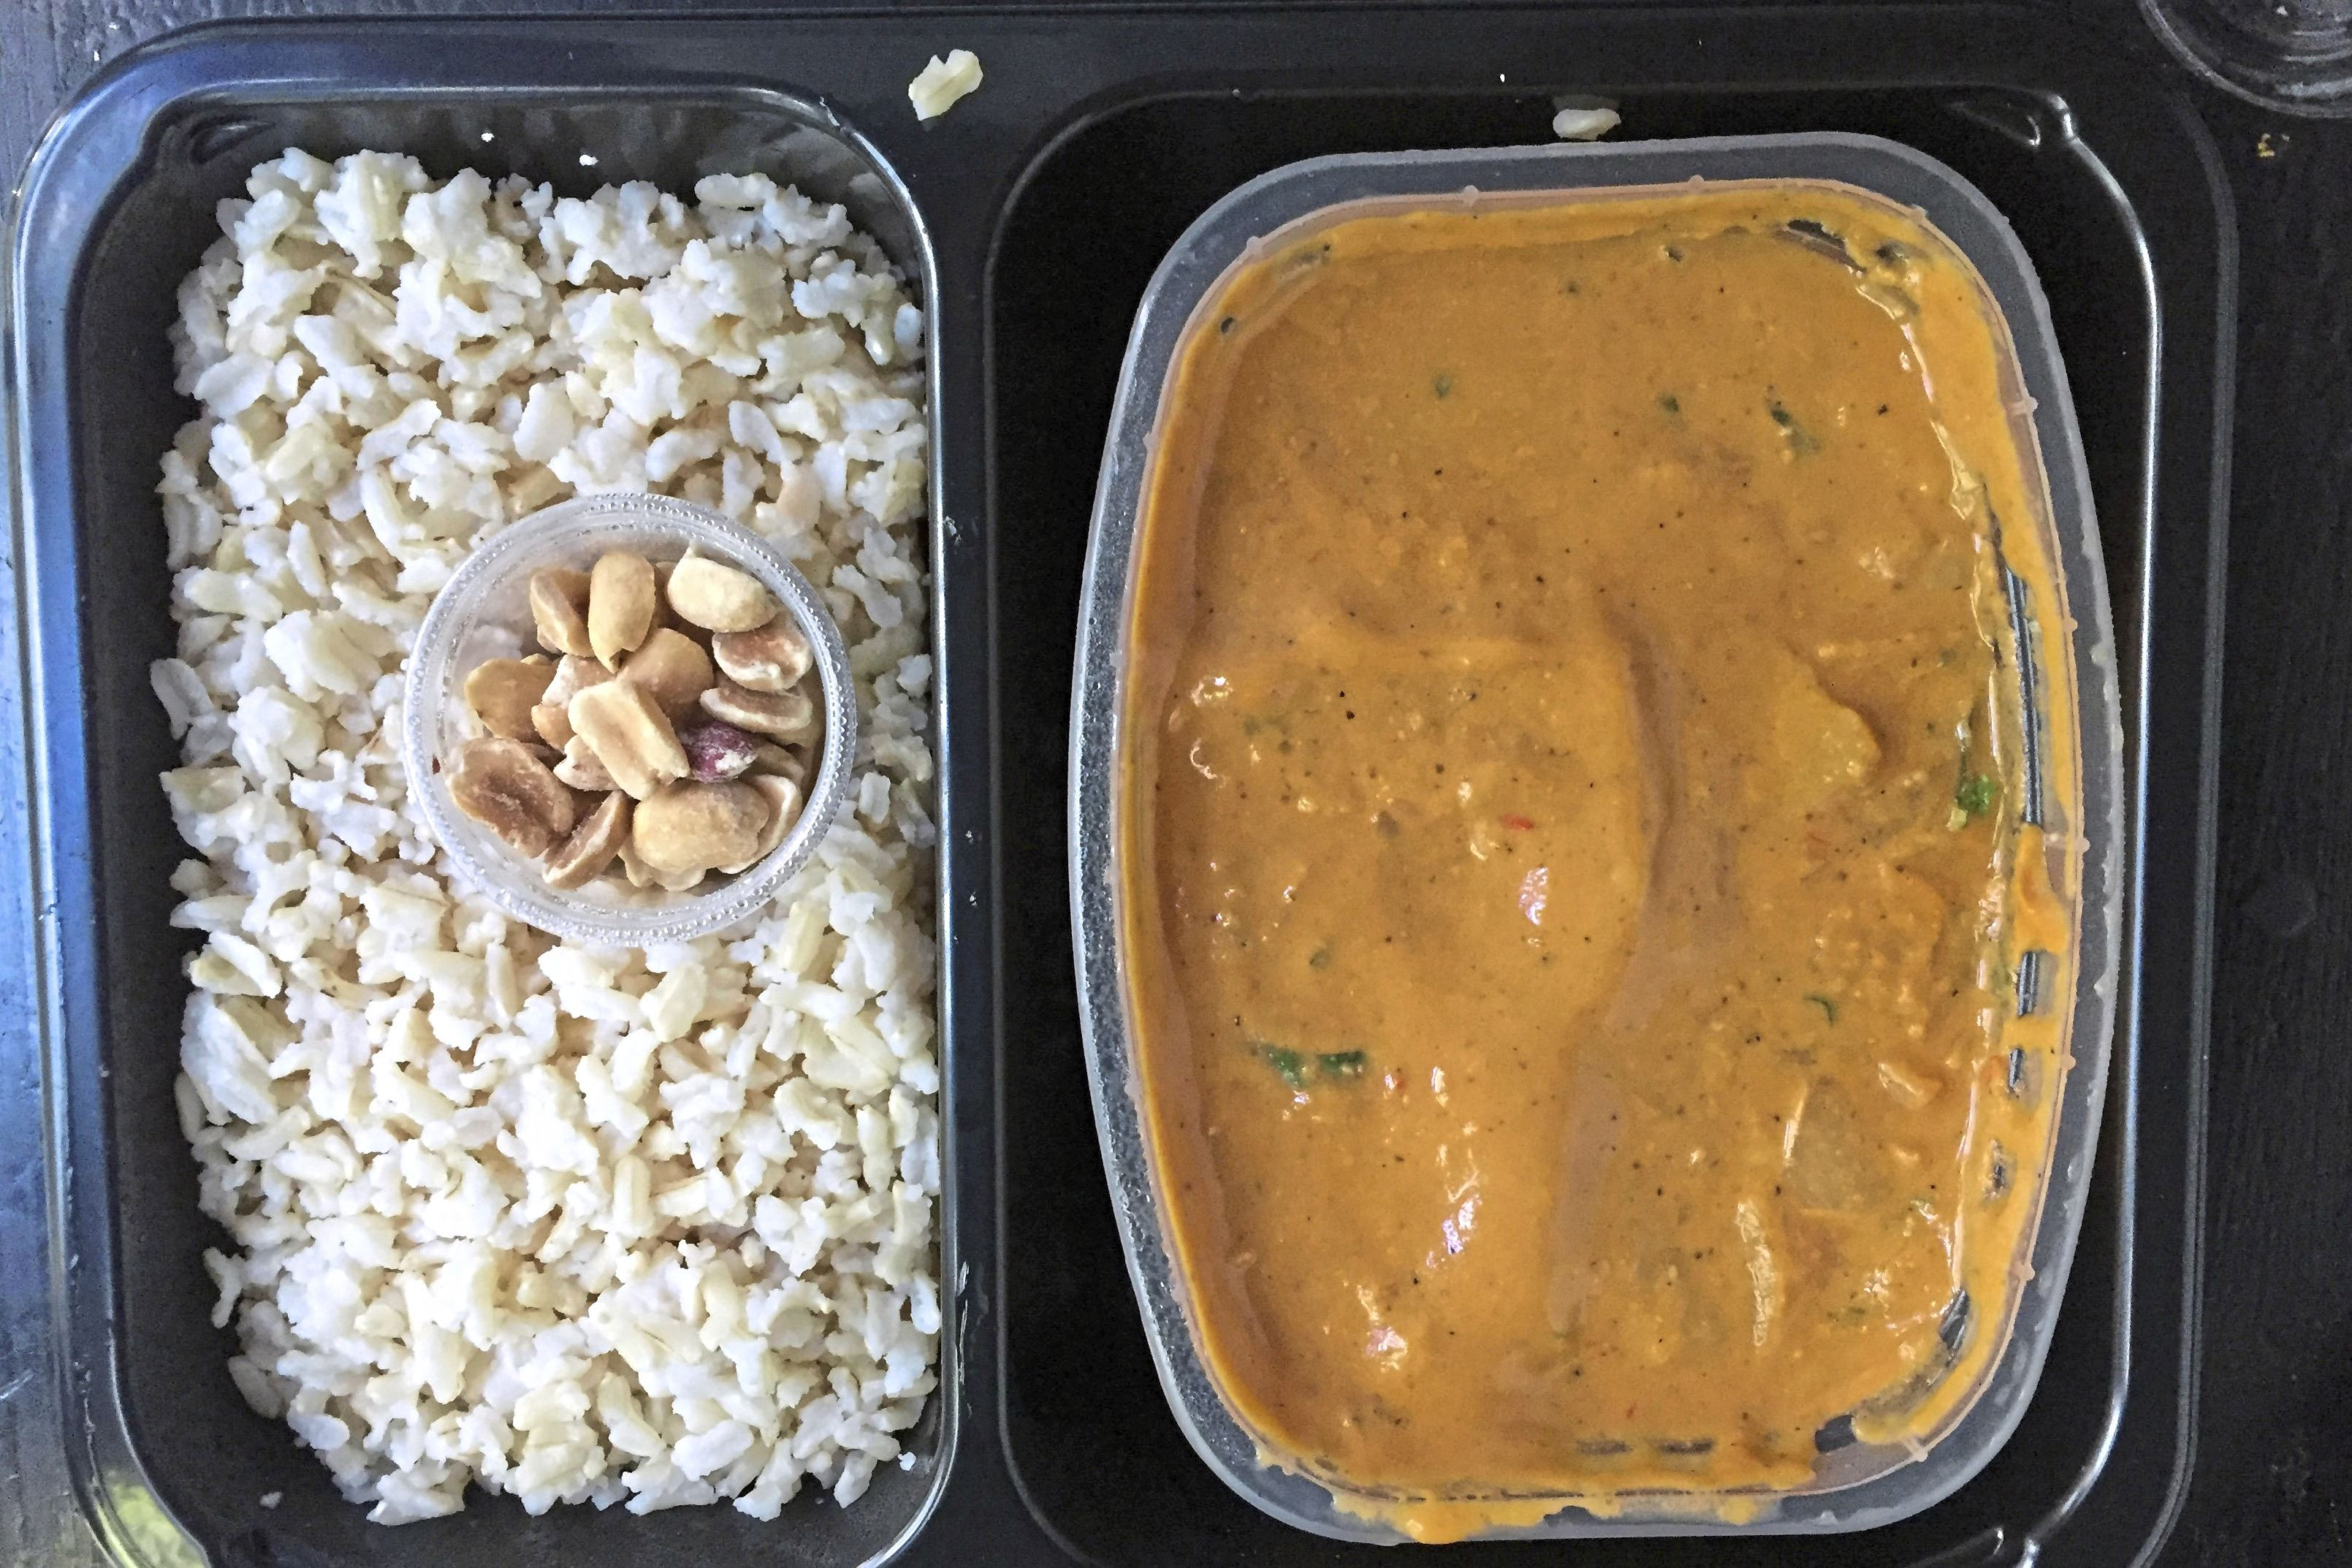 sprinly peanut stew 1-1 North African Harissa Peanut Stew is among the many vegan options from the Cleveland food start-up Sprinly.